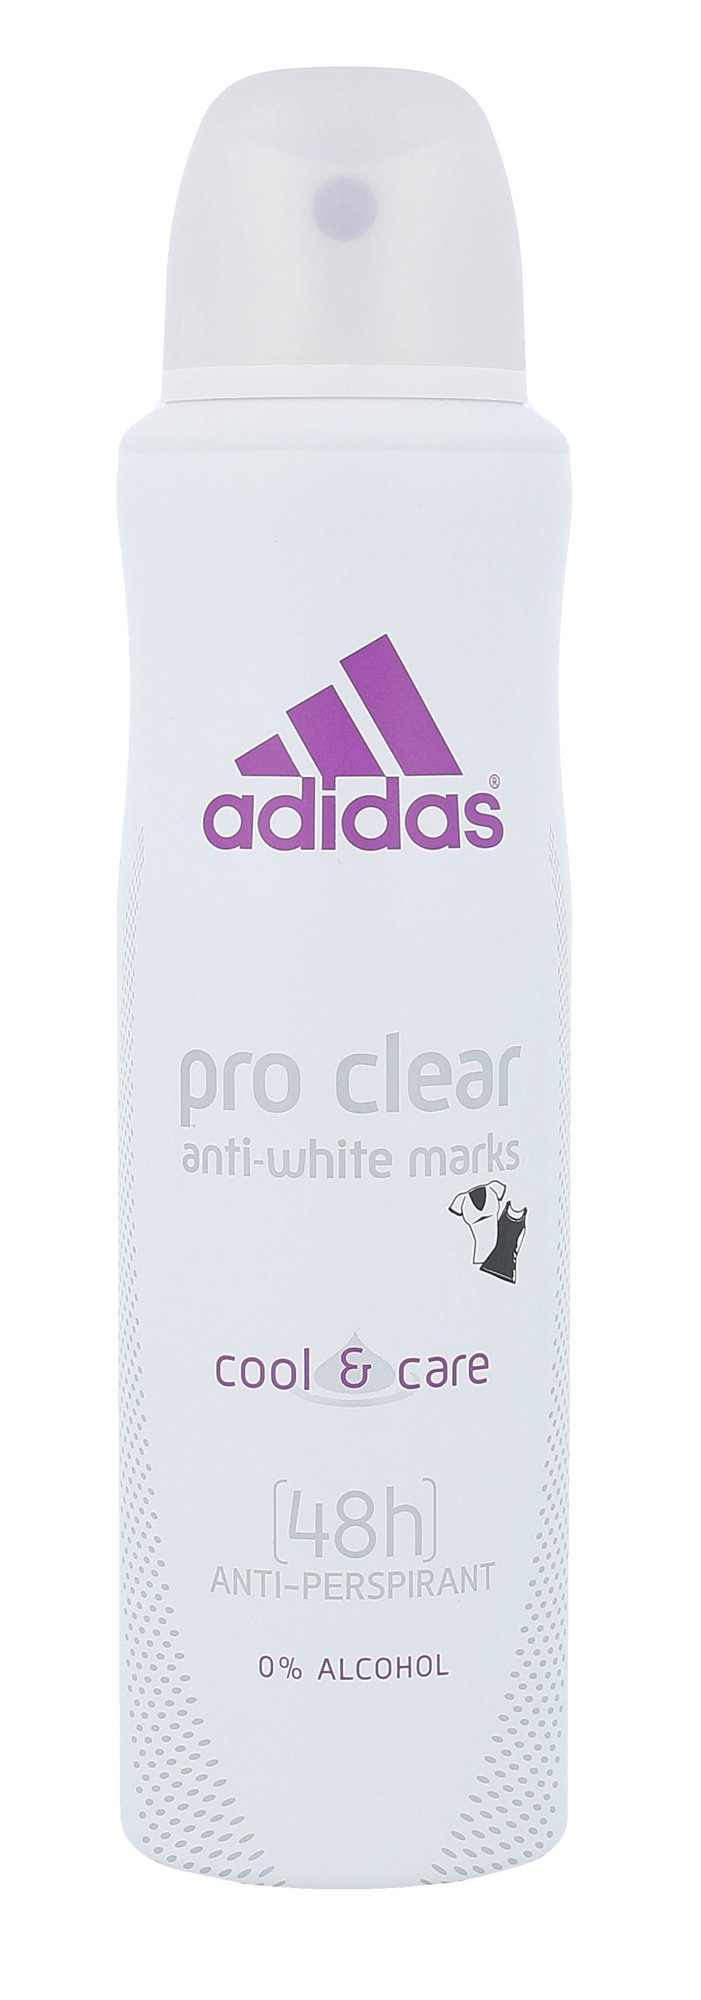 Adidas Pro Clear Antiperspirant 150ml